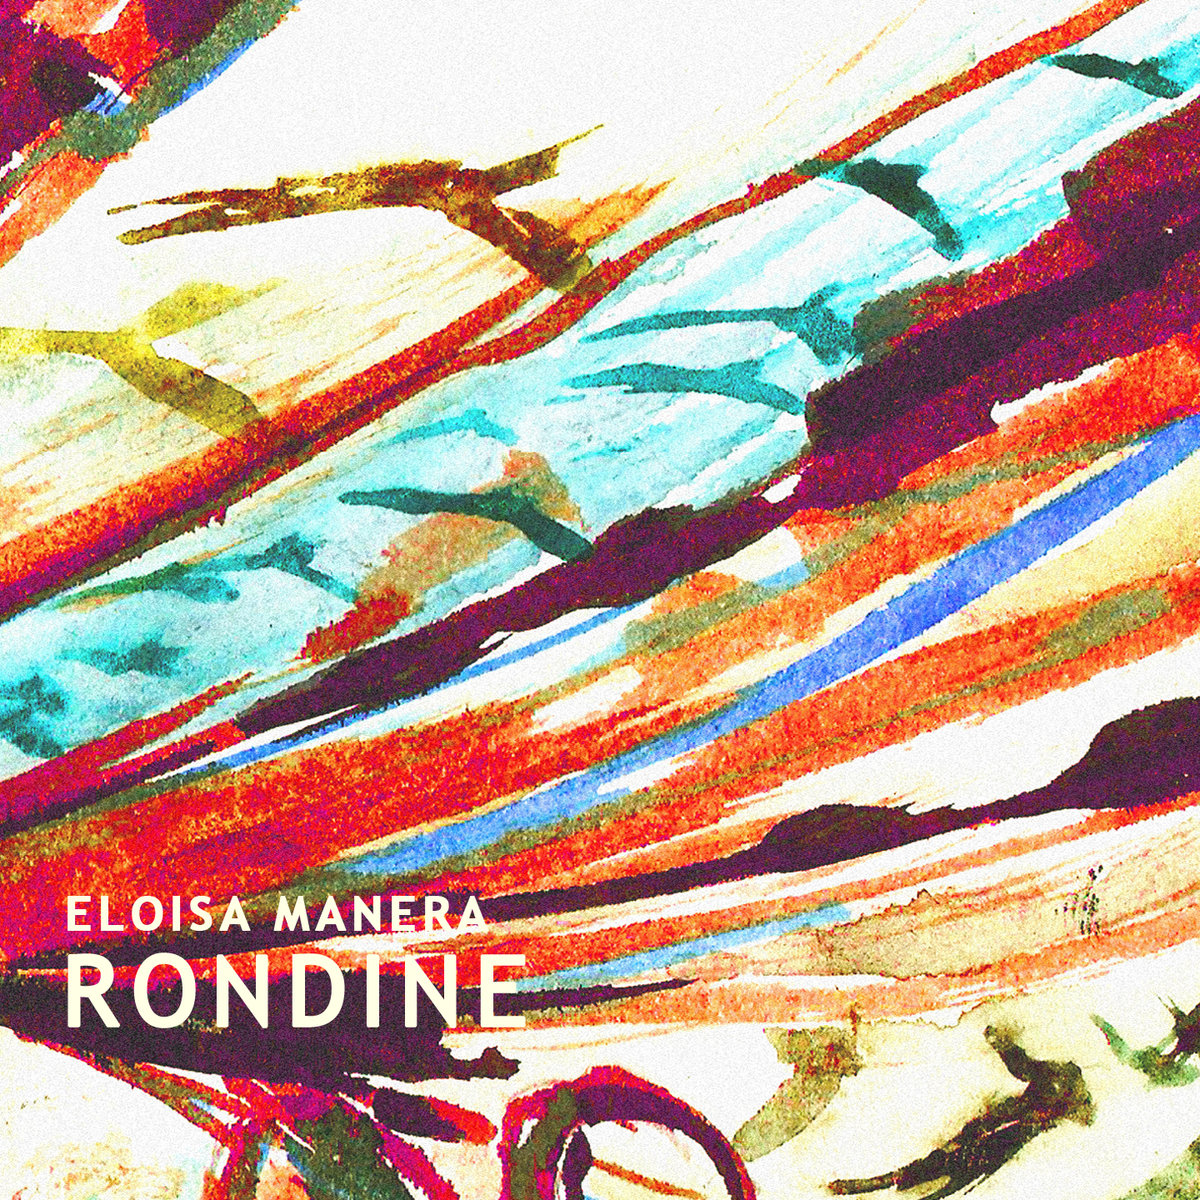 Eloisa Manera - 'Rondine' - album cover